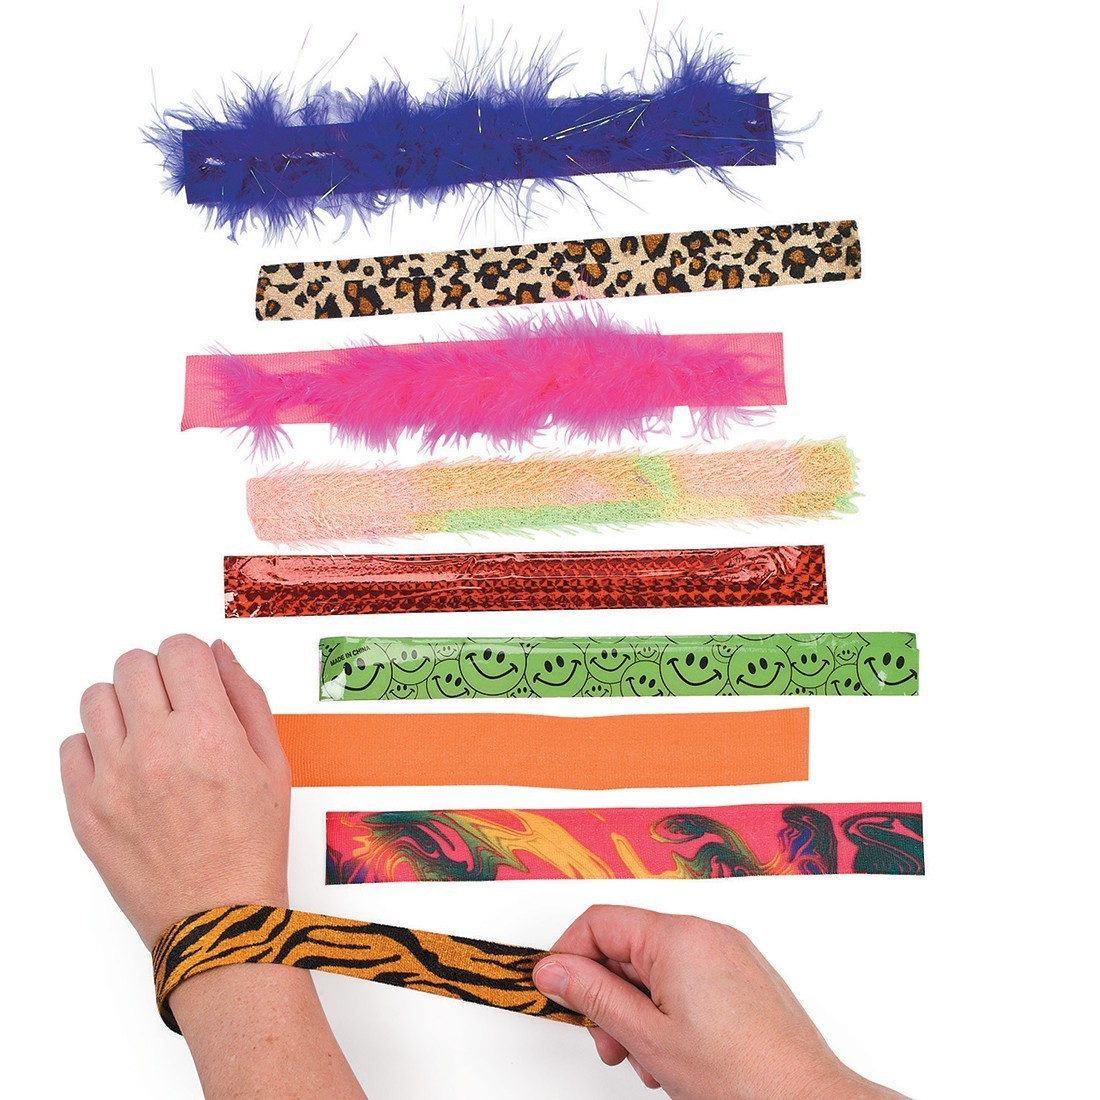 Slap Bracelet Value Pack [image]